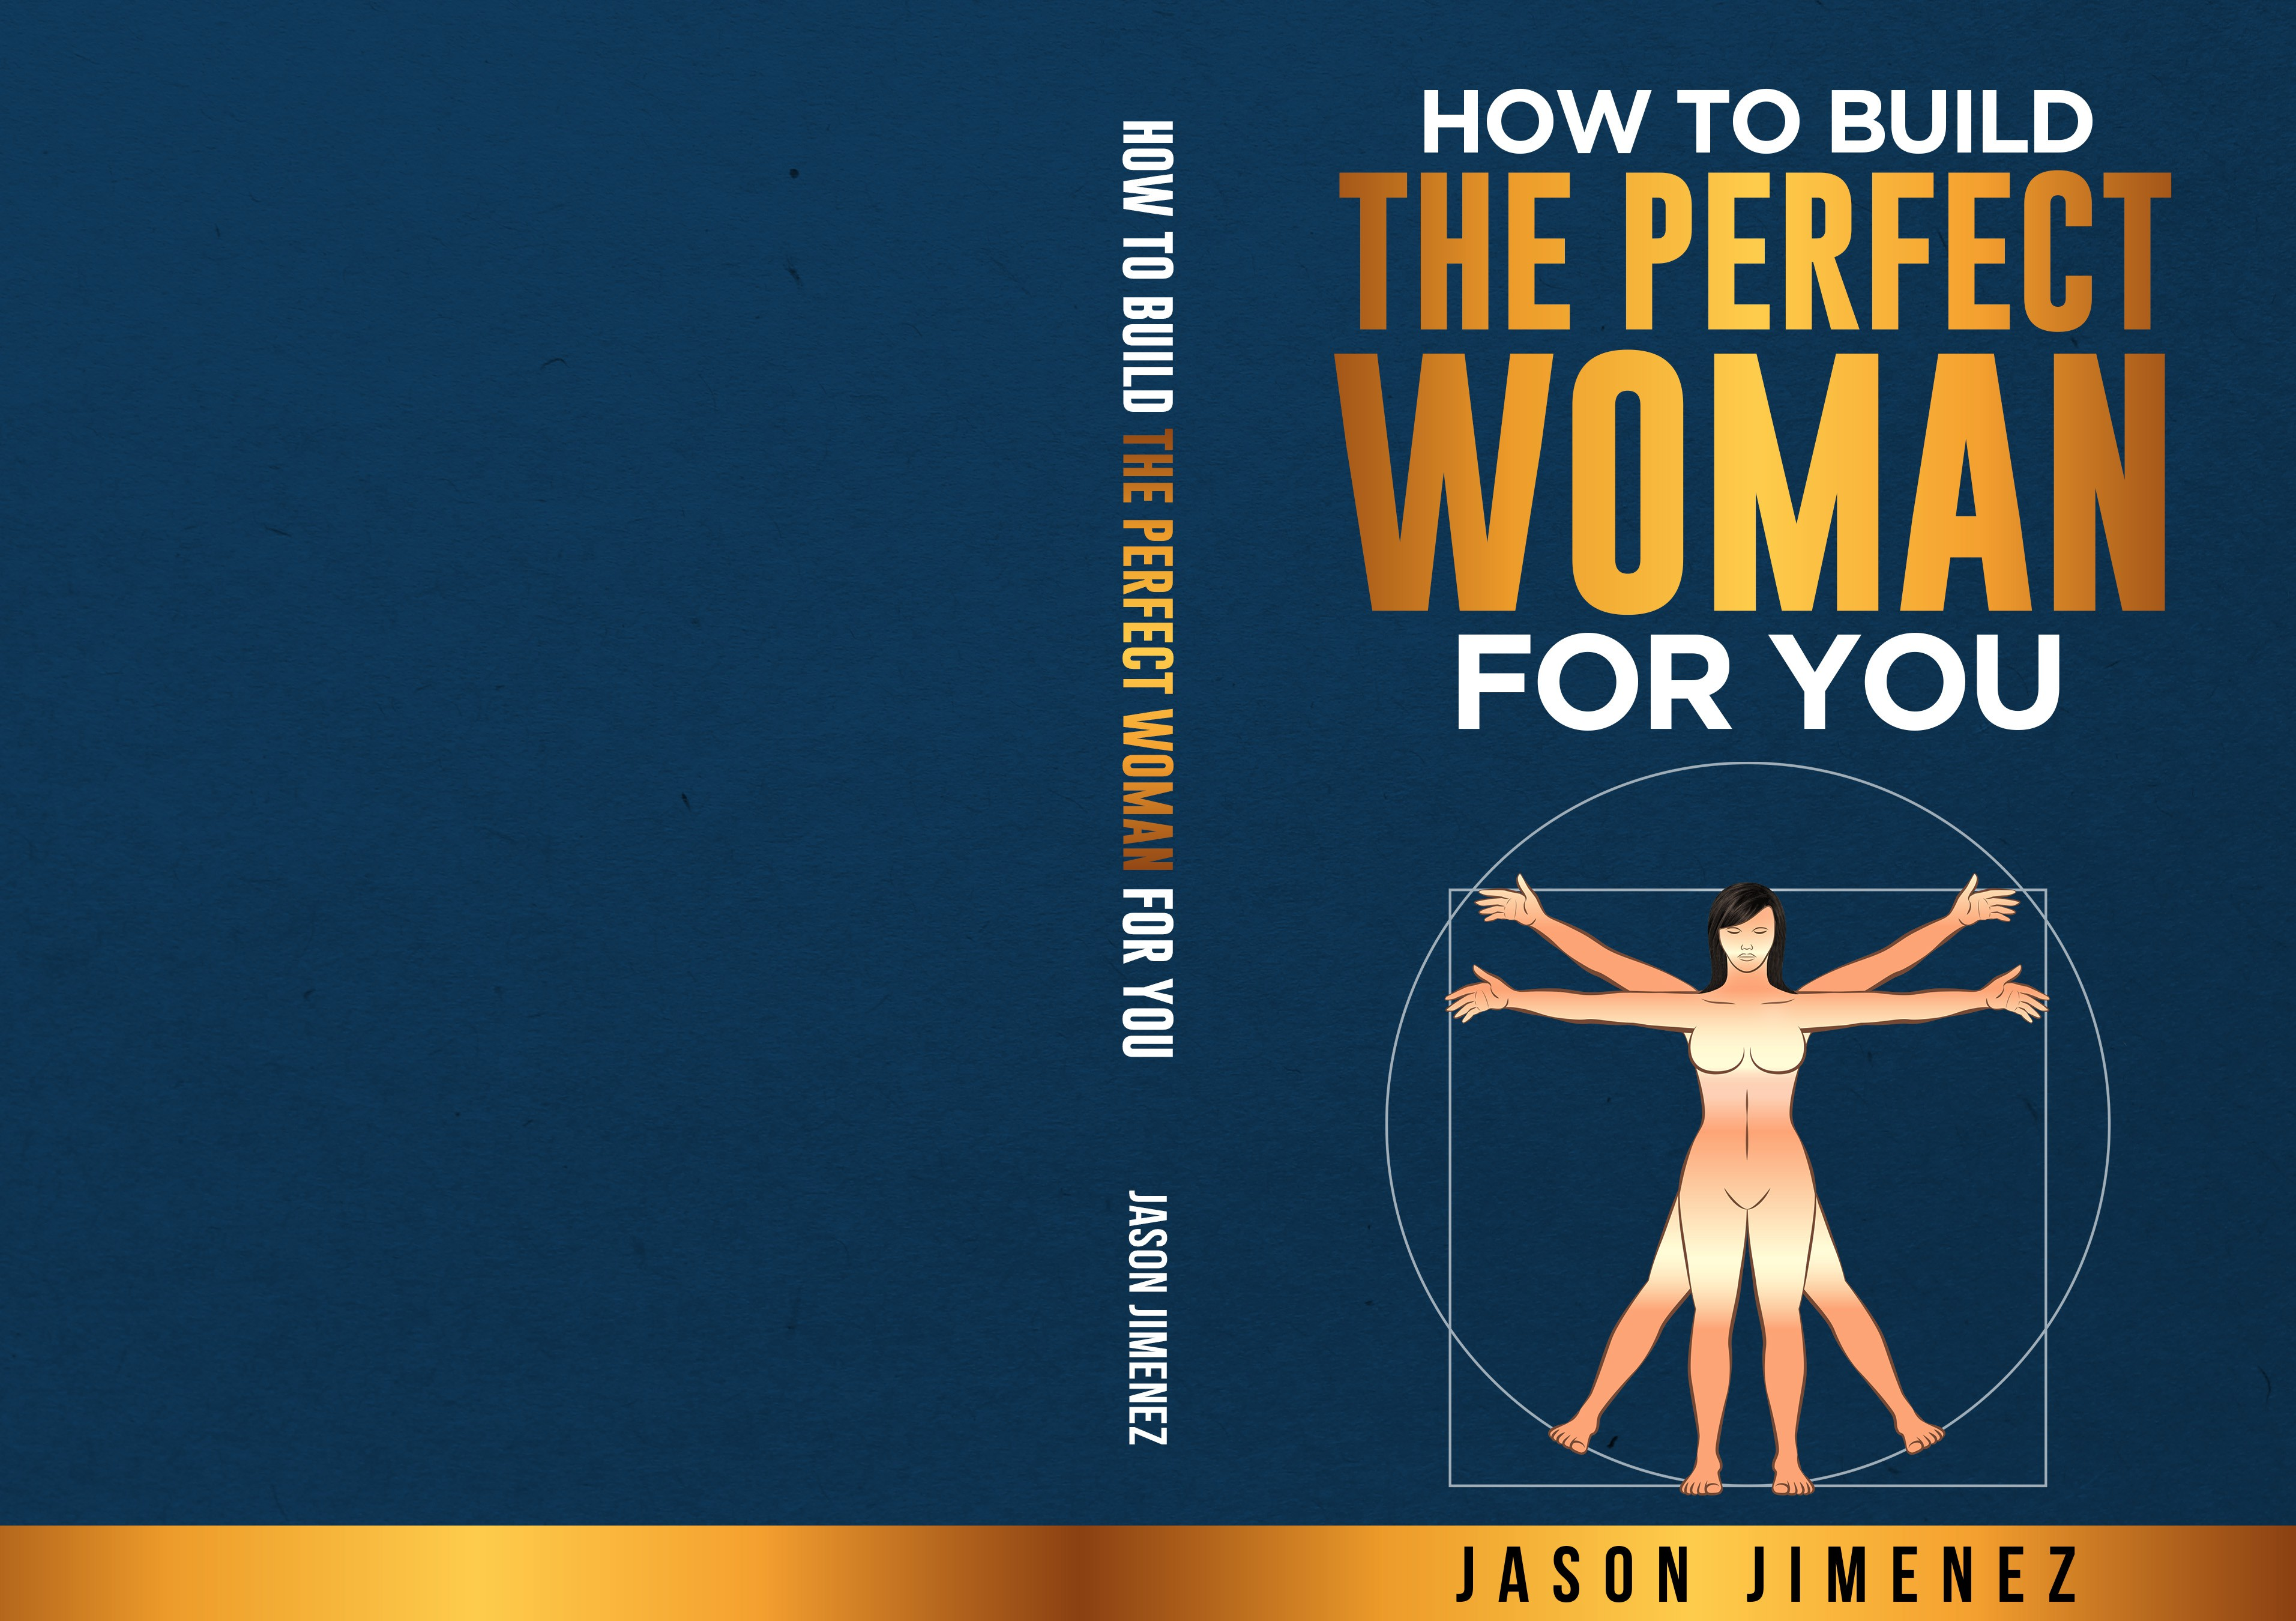 How To Build The Perfect Woman